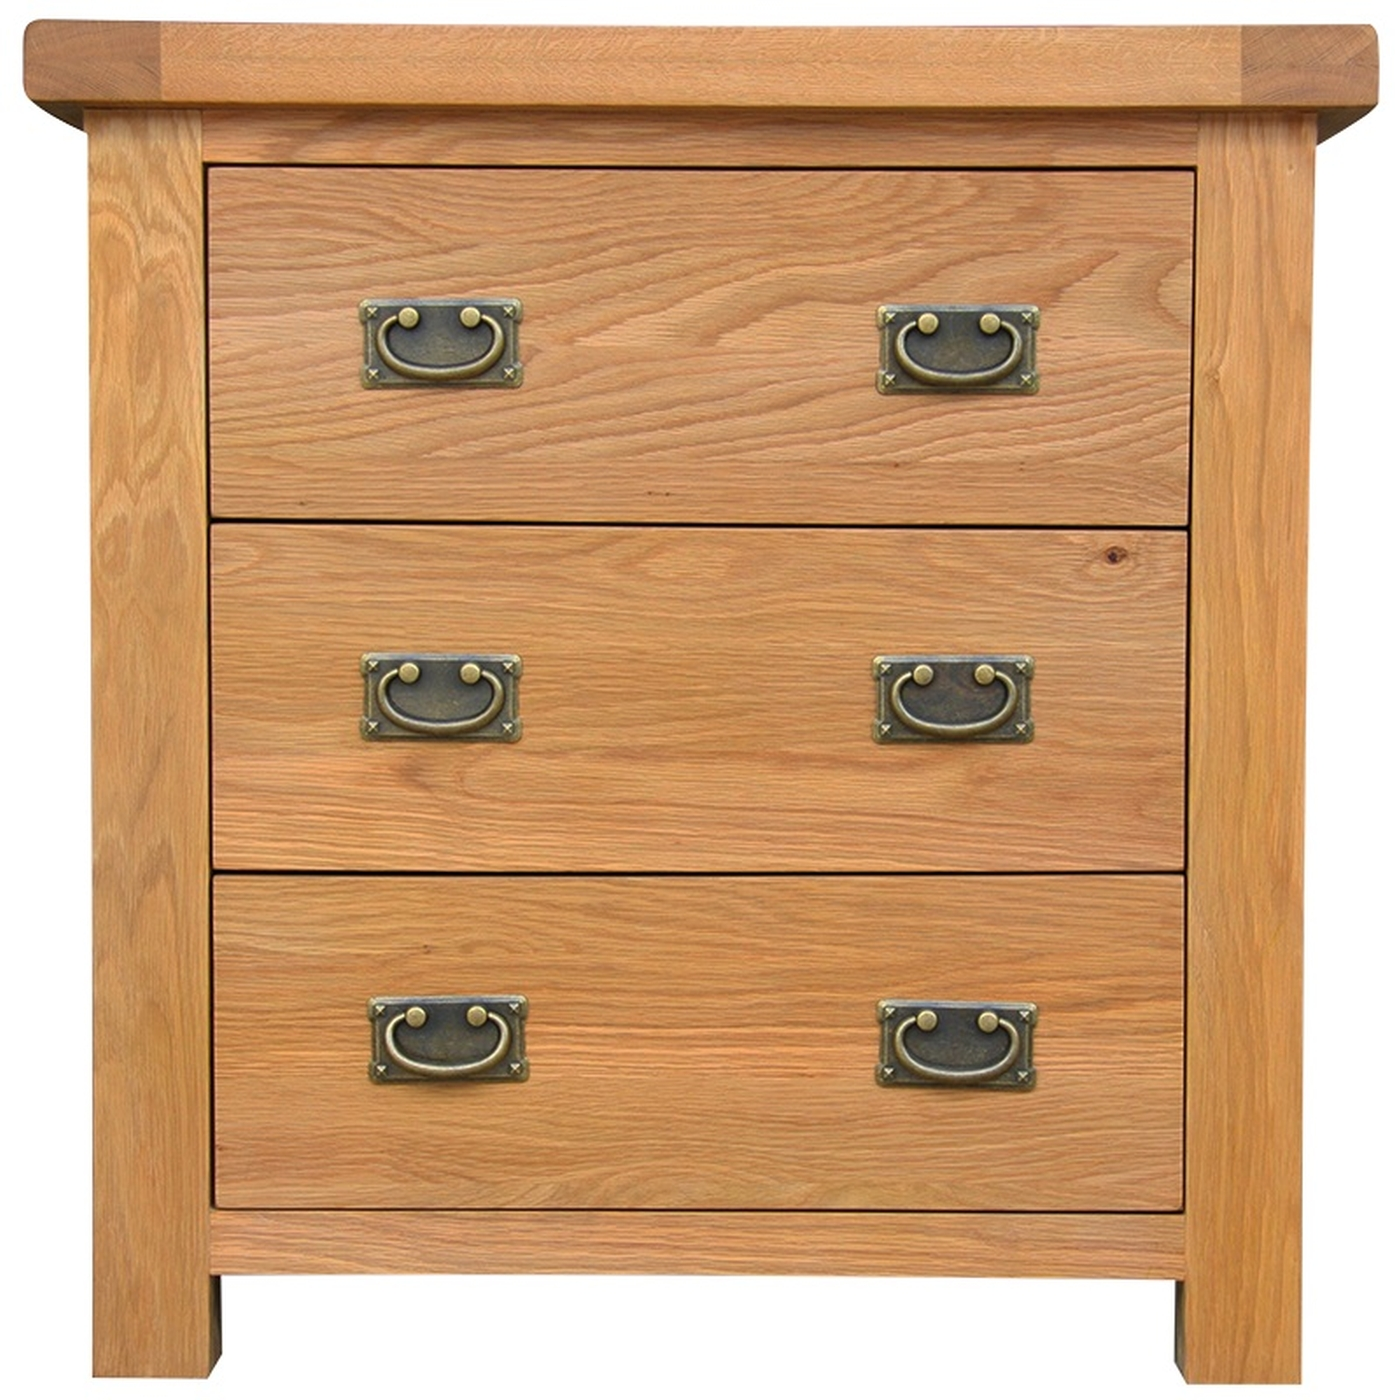 Bedroom Chests Of Drawers: Ribble Solid Oak Furniture Small Bedroom Chest Of Drawers